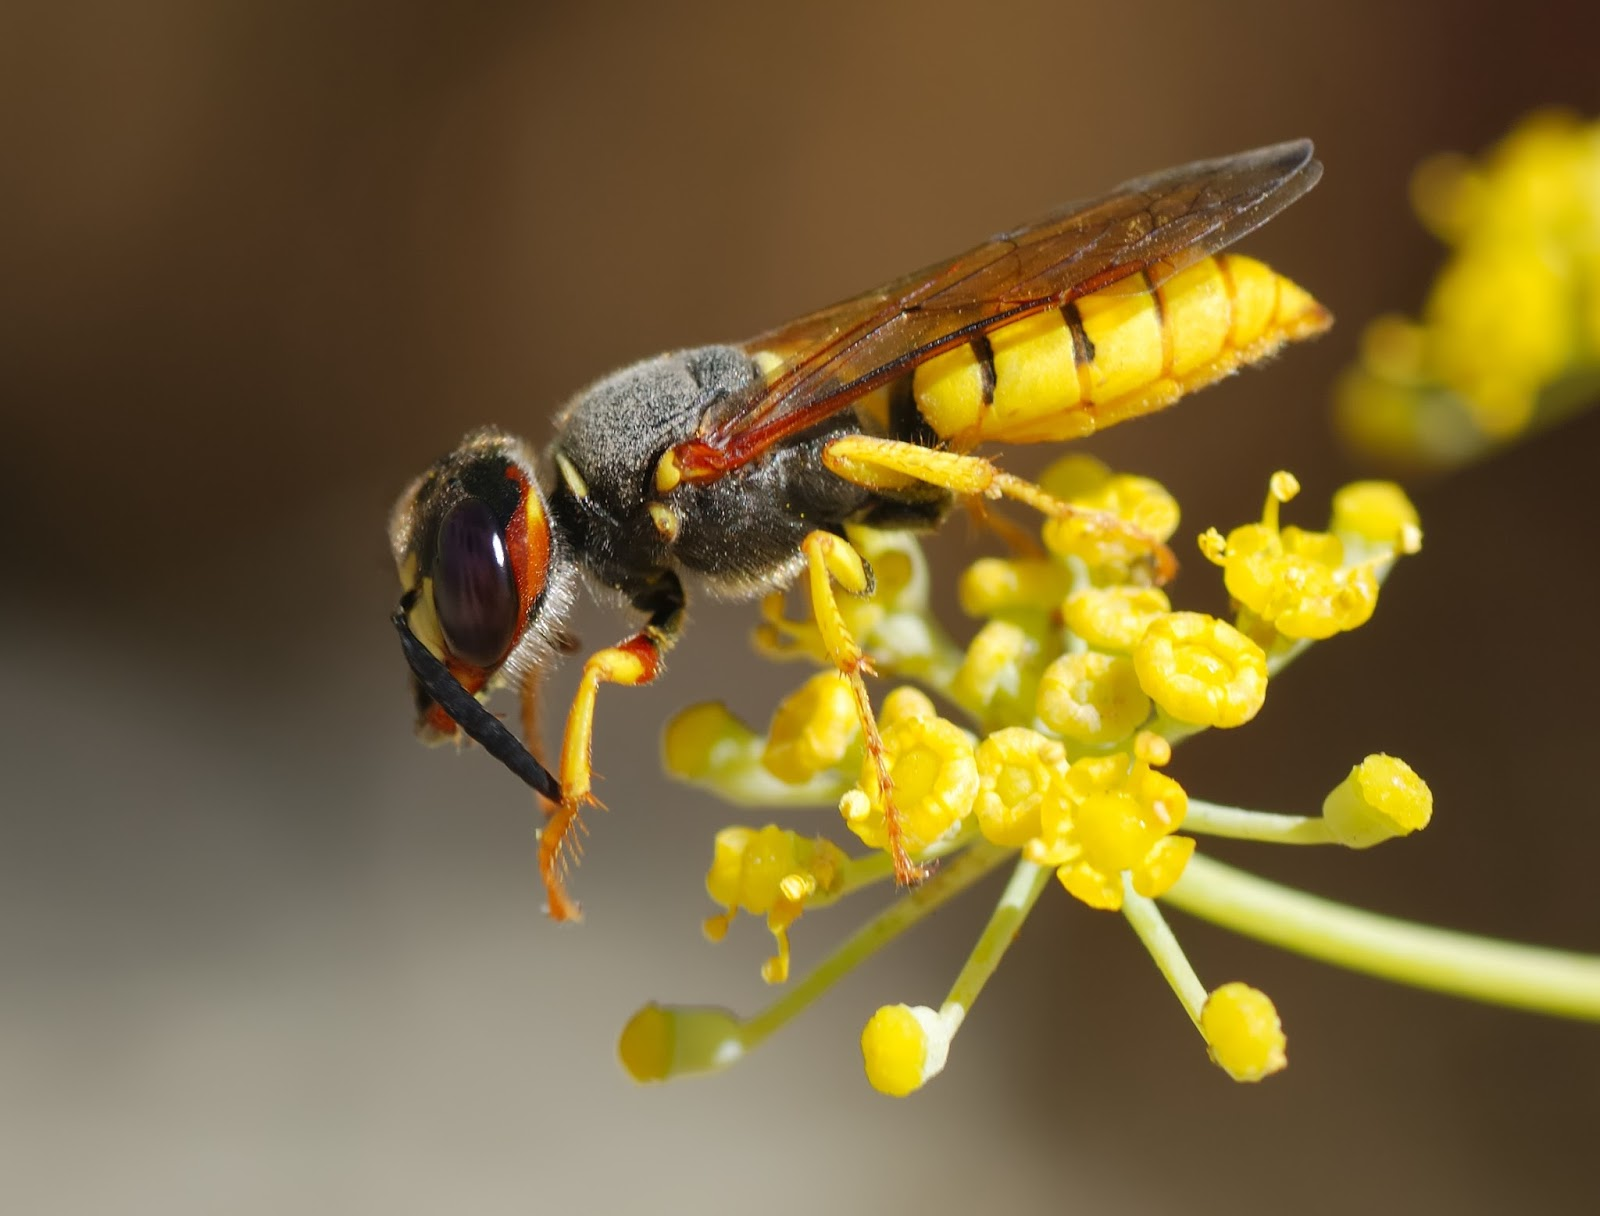 Picture of a beewolf wasp.